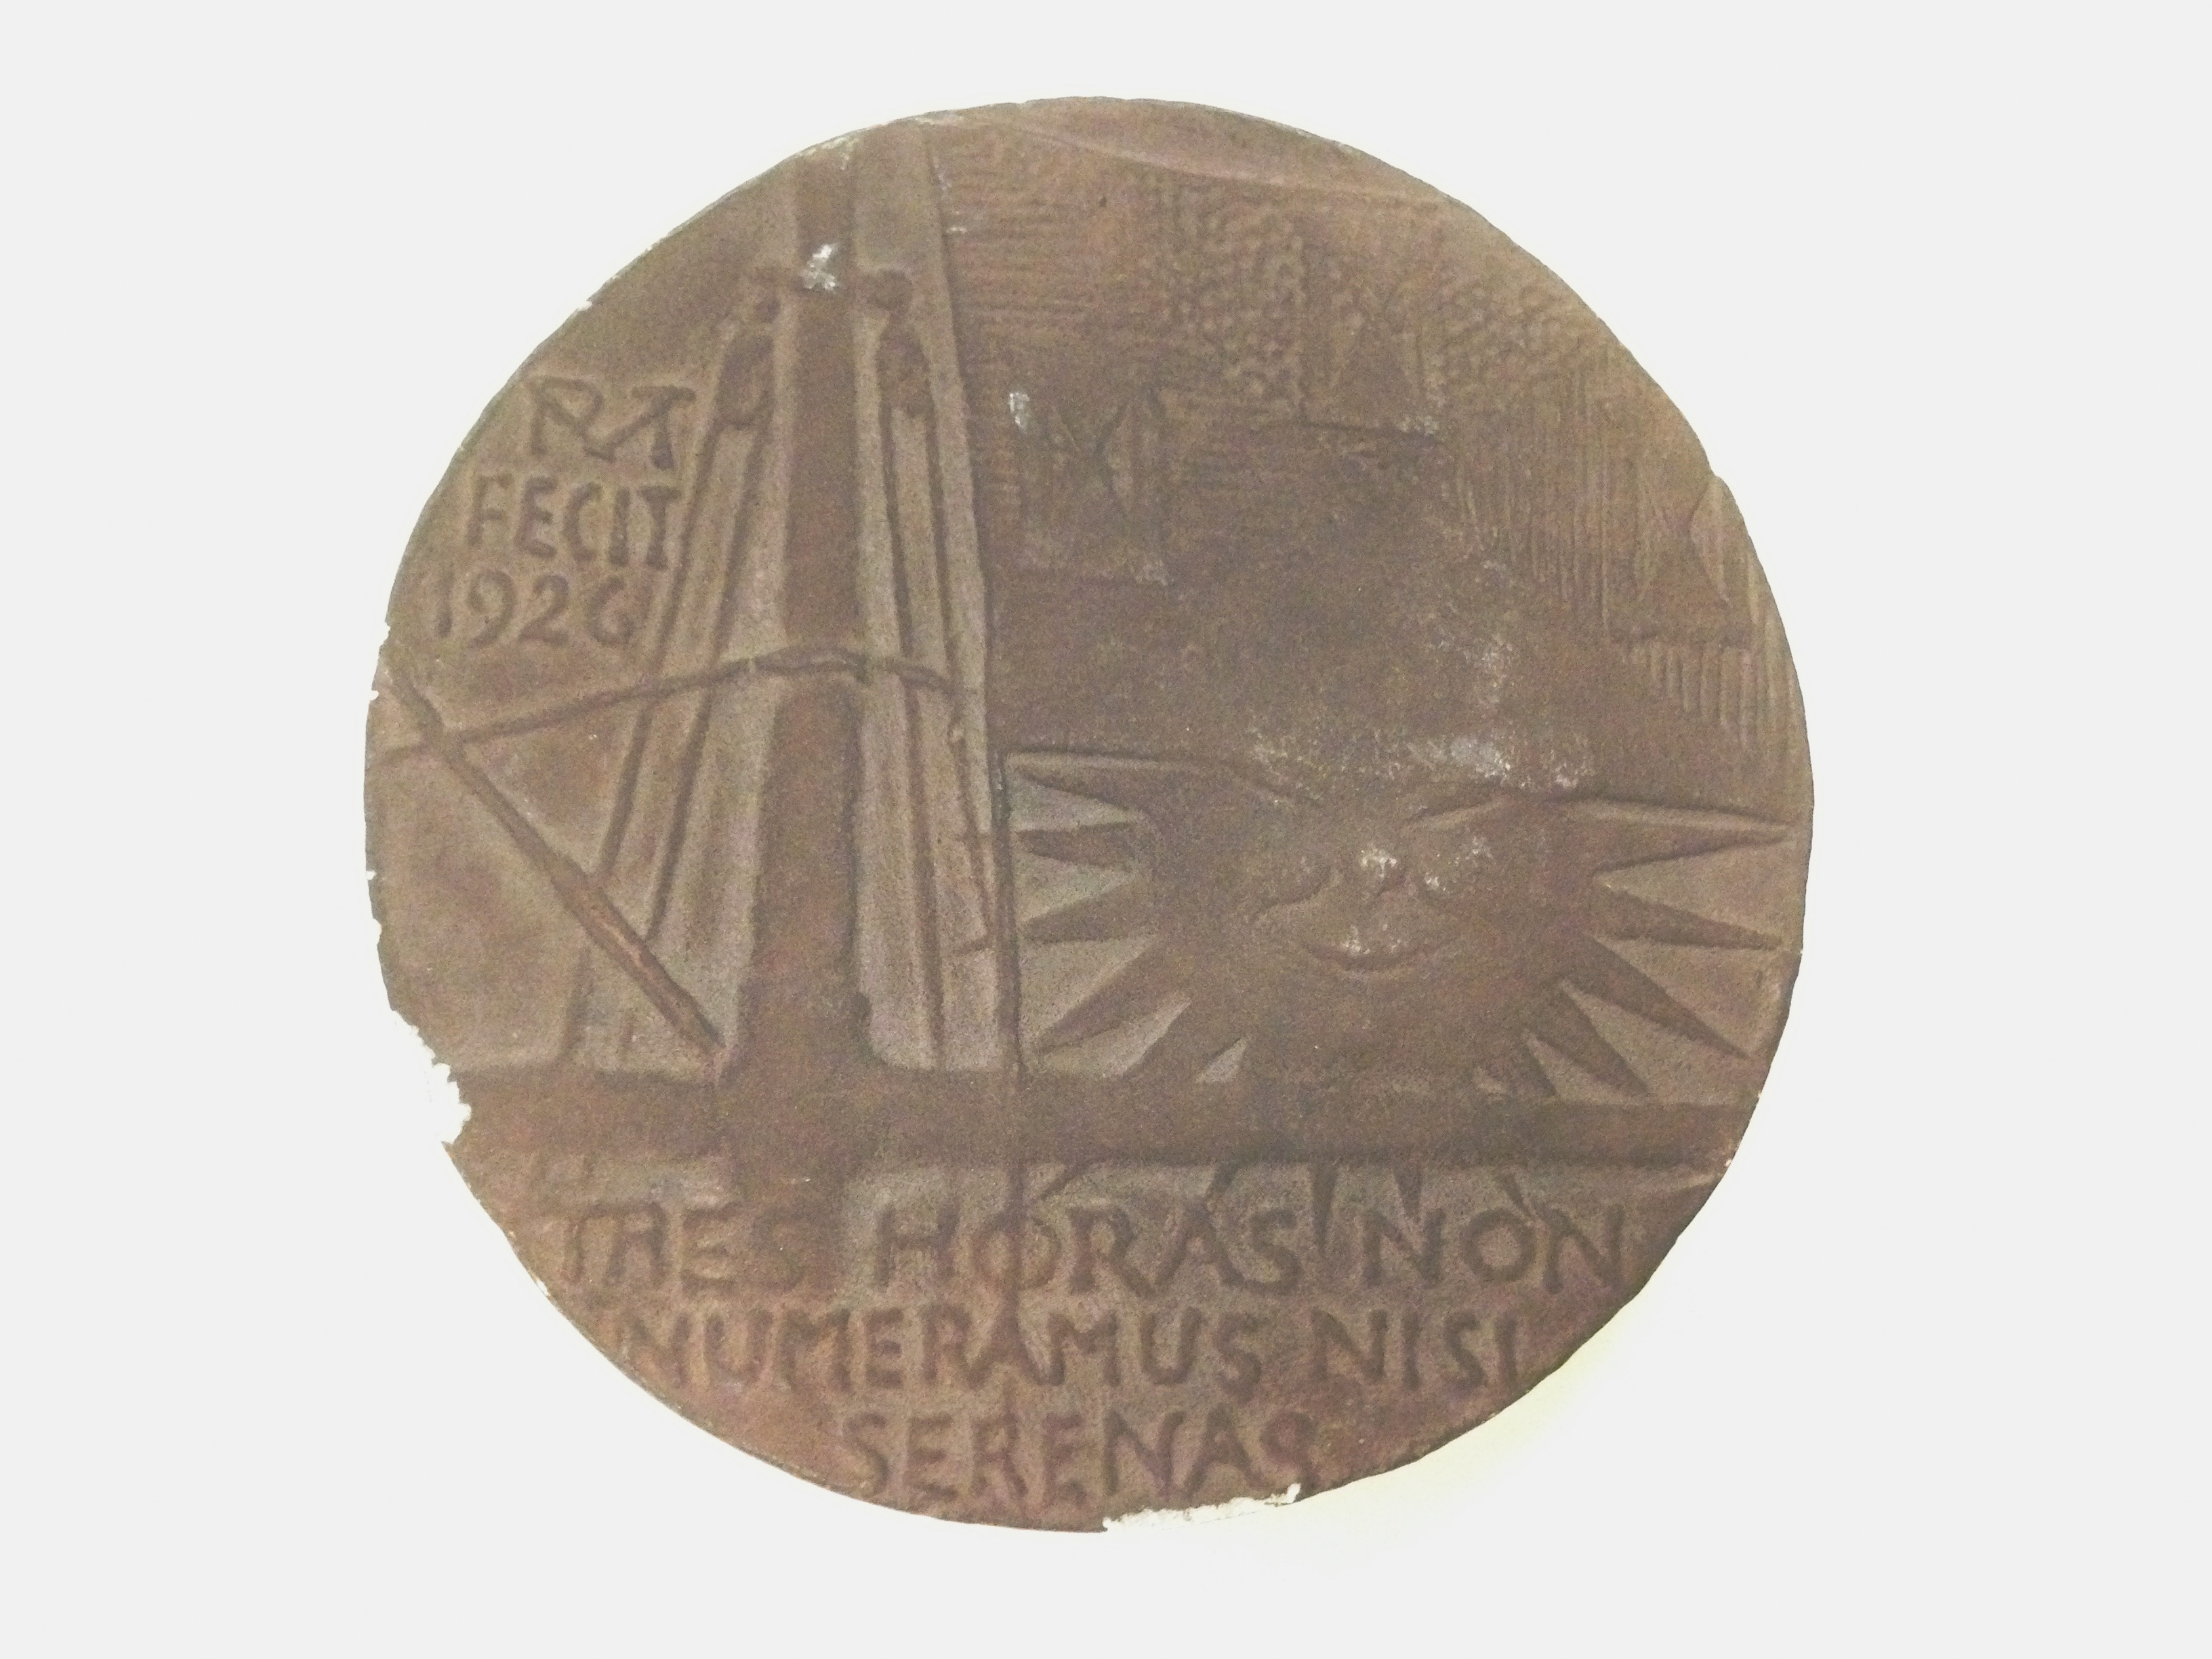 Christopher Morley and The Three Hours For Lunch Club Medal